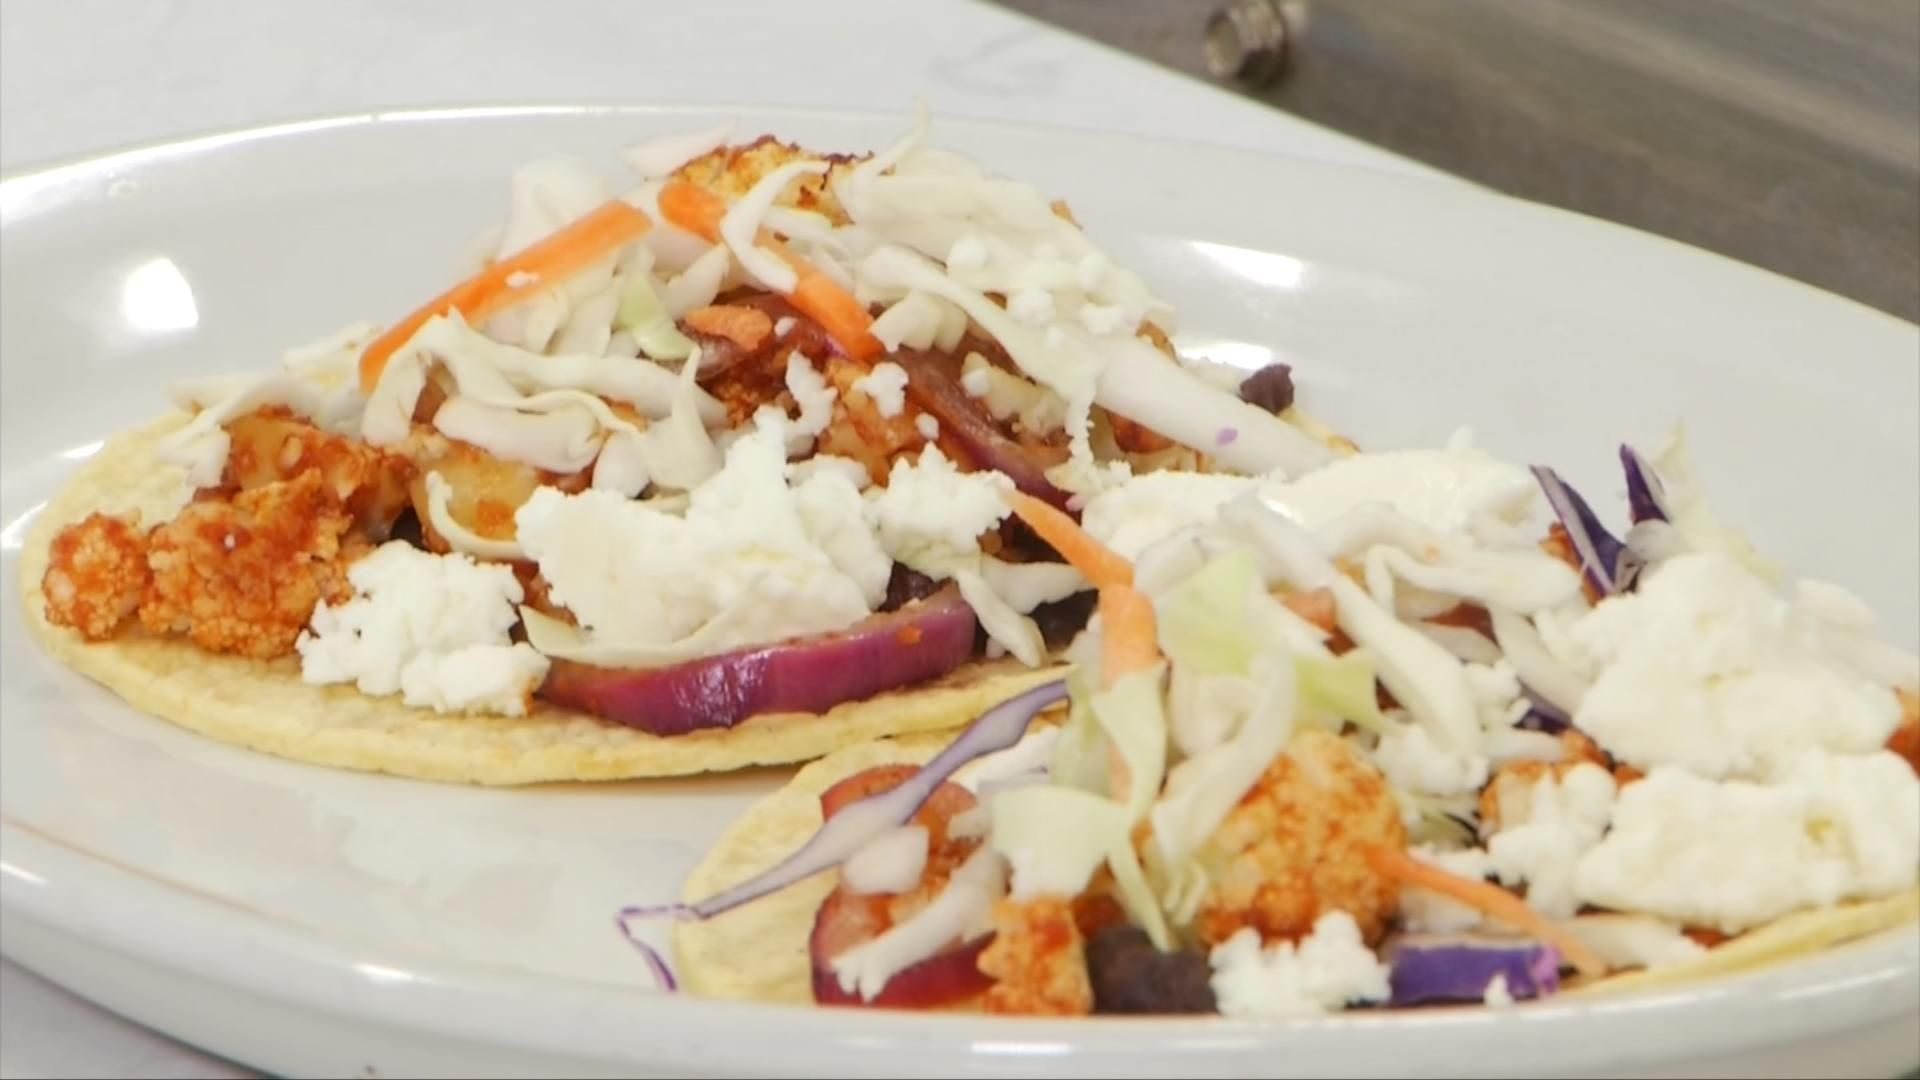 Michelle Cooks: Chipotle-Lime Cauliflower Tacos - 9 & 10 News